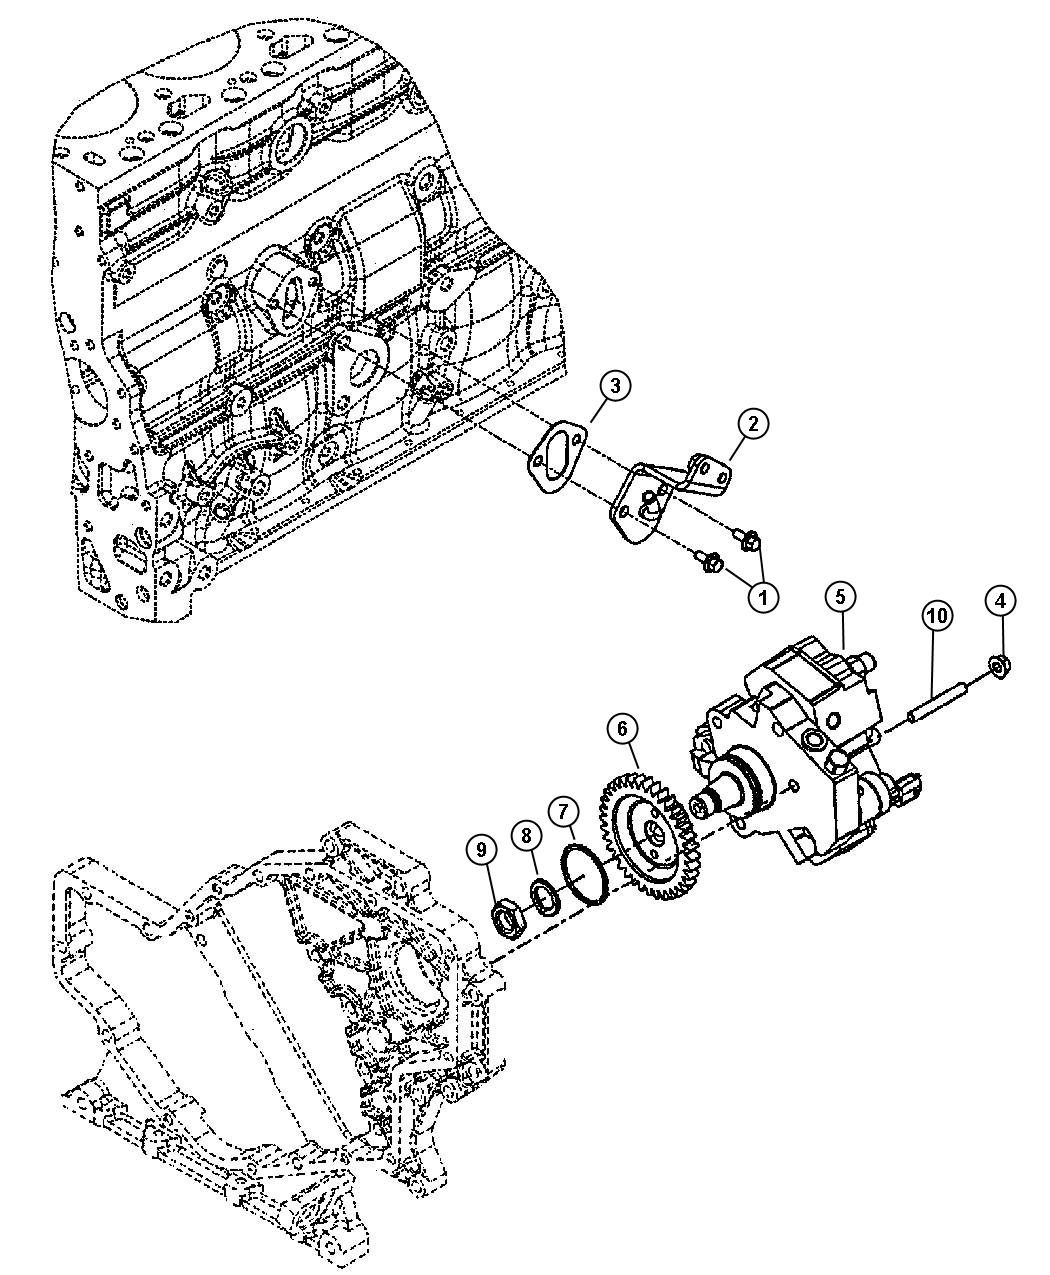 Jeep Inline 6 Cylinder Engine as well Western Star Glider Kit Trucks besides 1996 Cadillac DeVille likewise 2008 Dodge Avenger Wiring Diagram further Hemi Engine Diagram Blueprint. on dodge ram 5 7 hemi firing order diagram